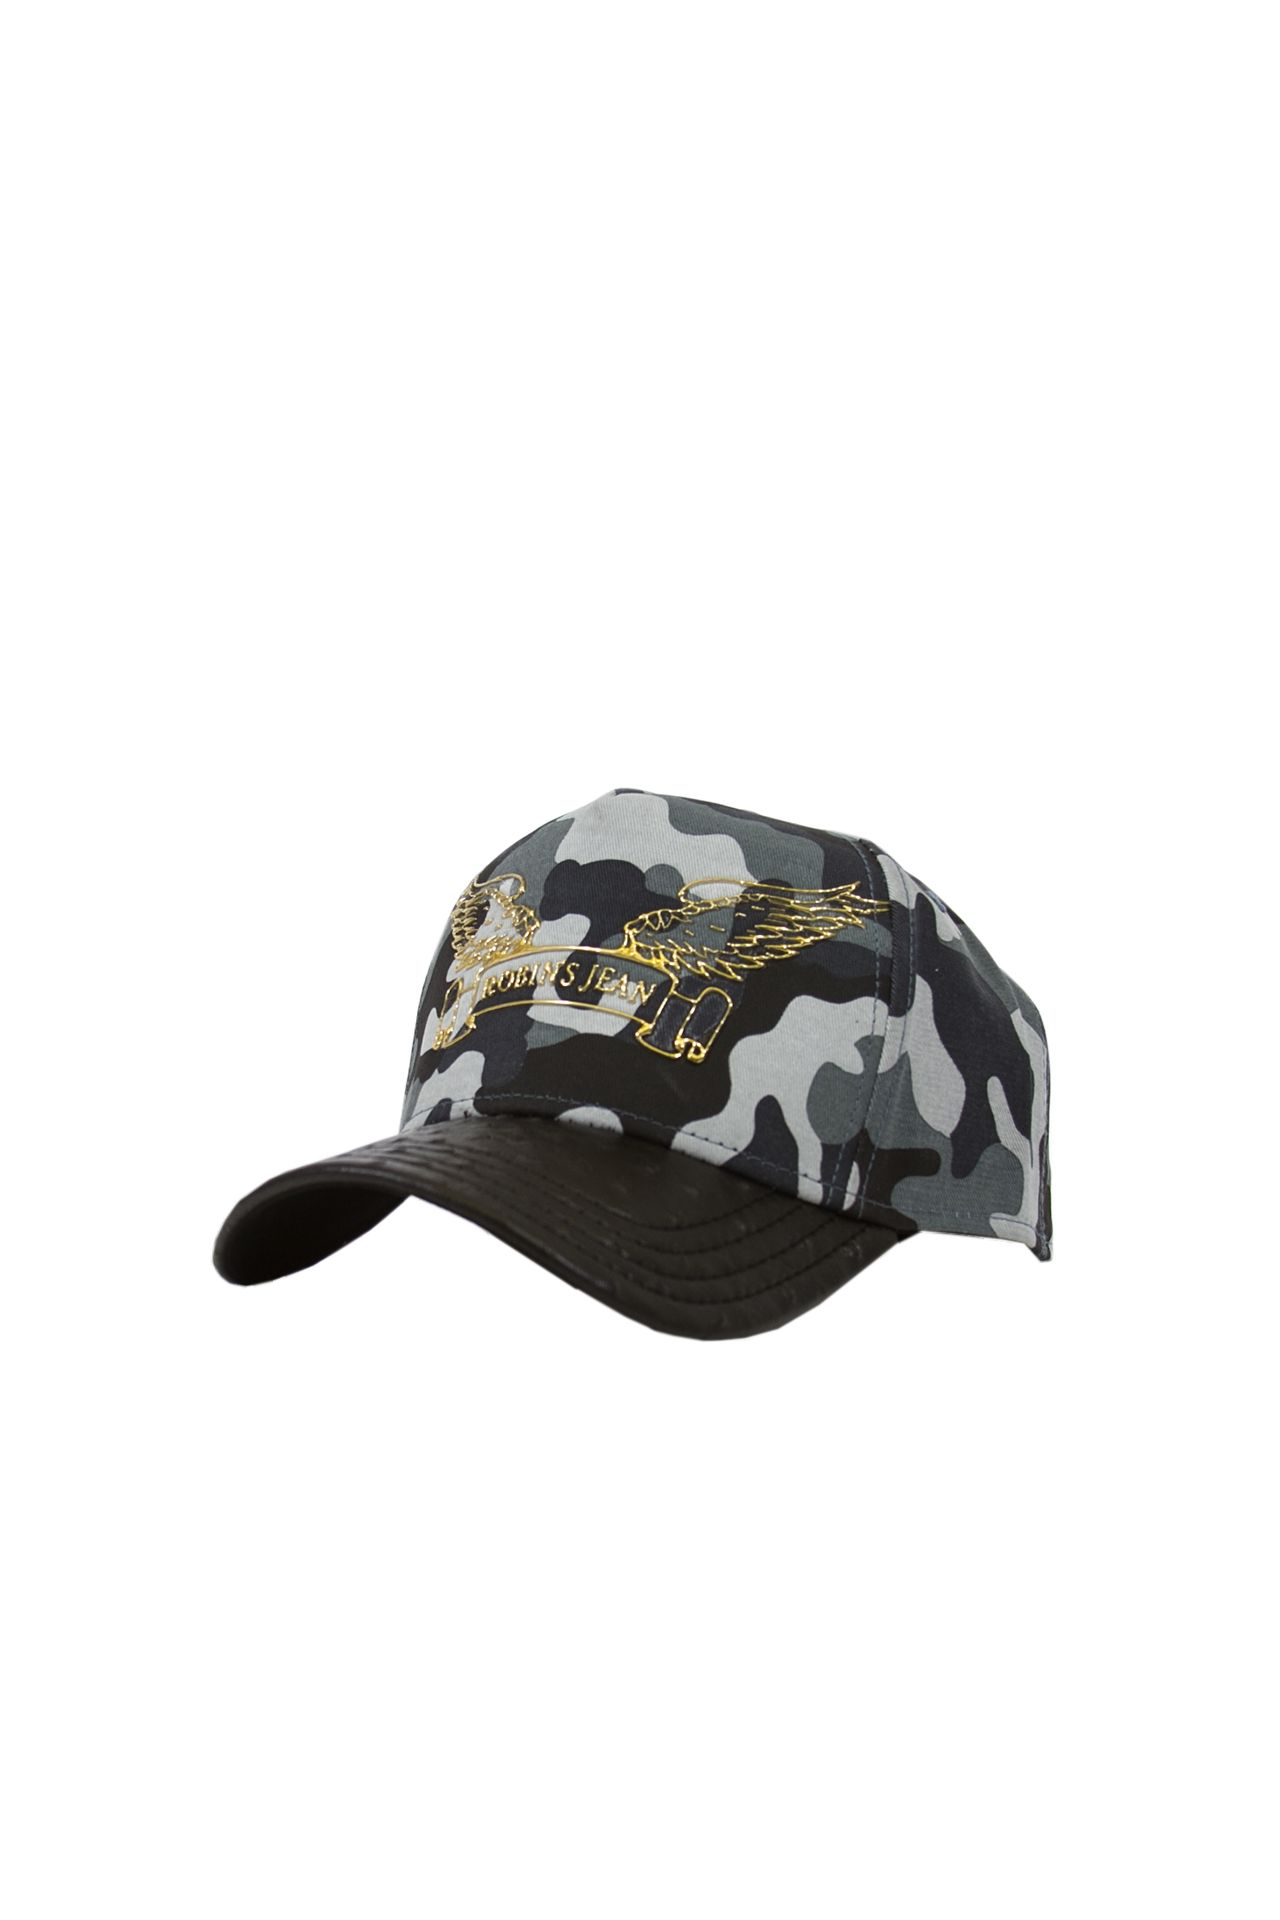 BLUE CAMO CAP WITH LEATHER LOOK BILL